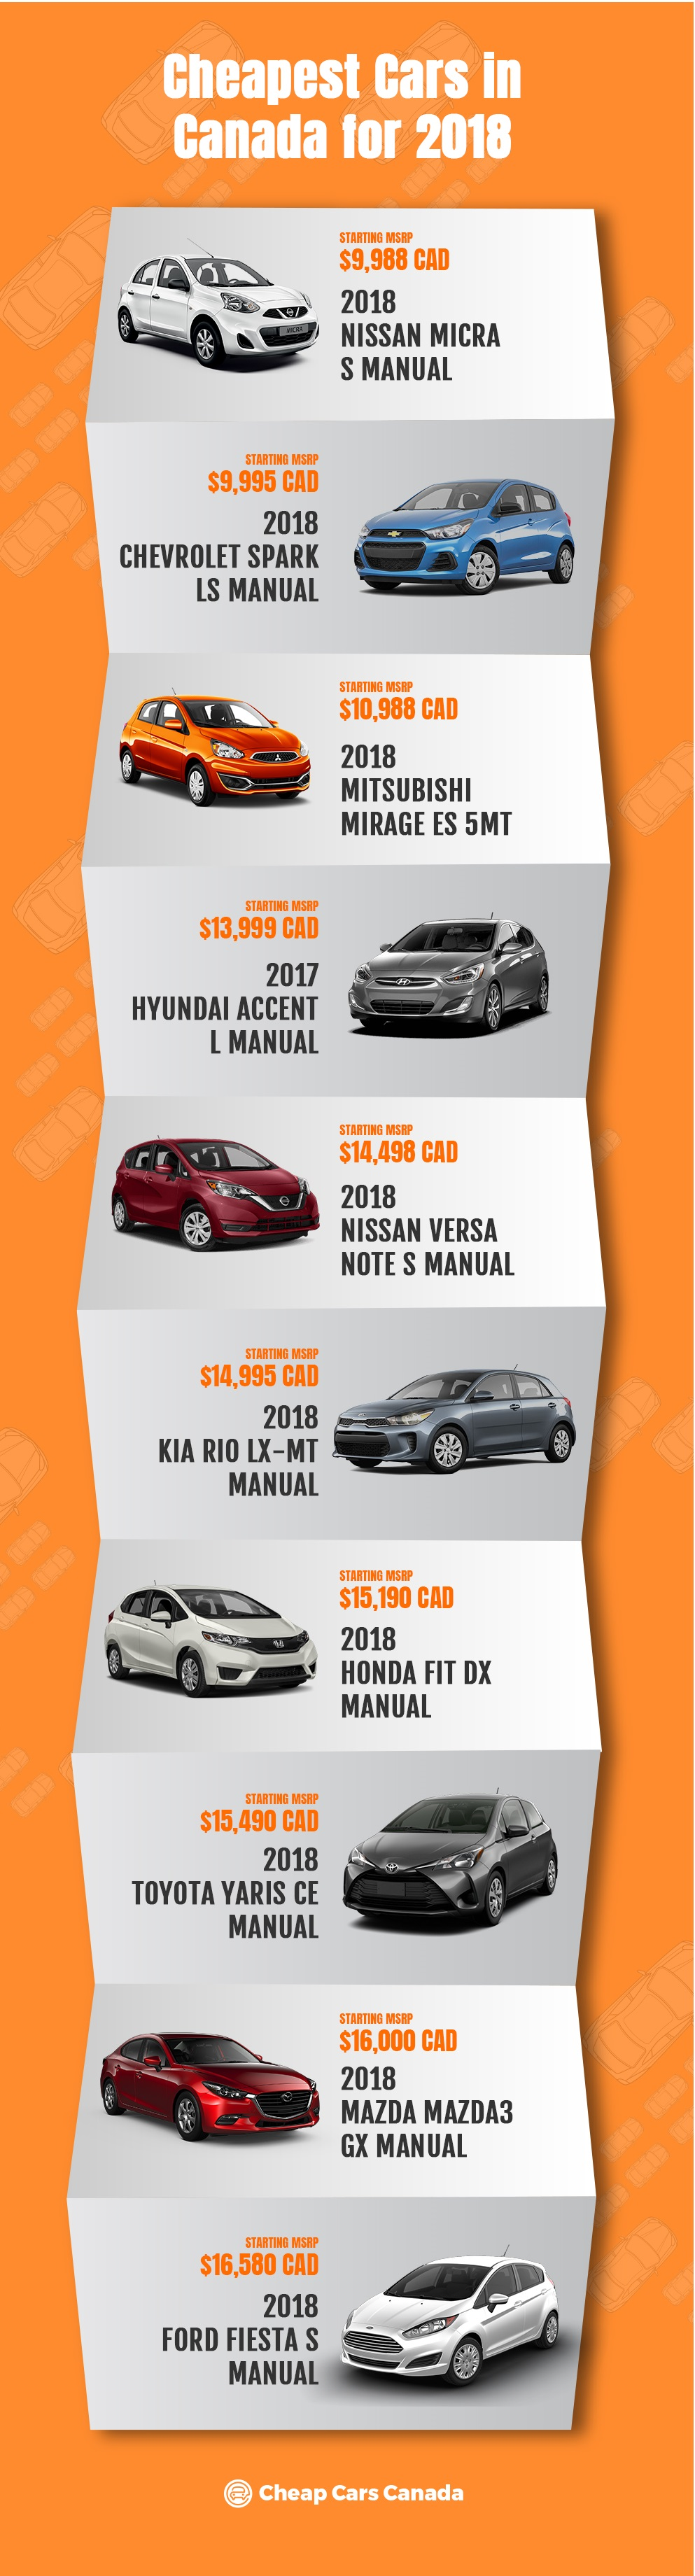 Cheapest Cars in Canada for 2018 Cheap Cars Canada Blog